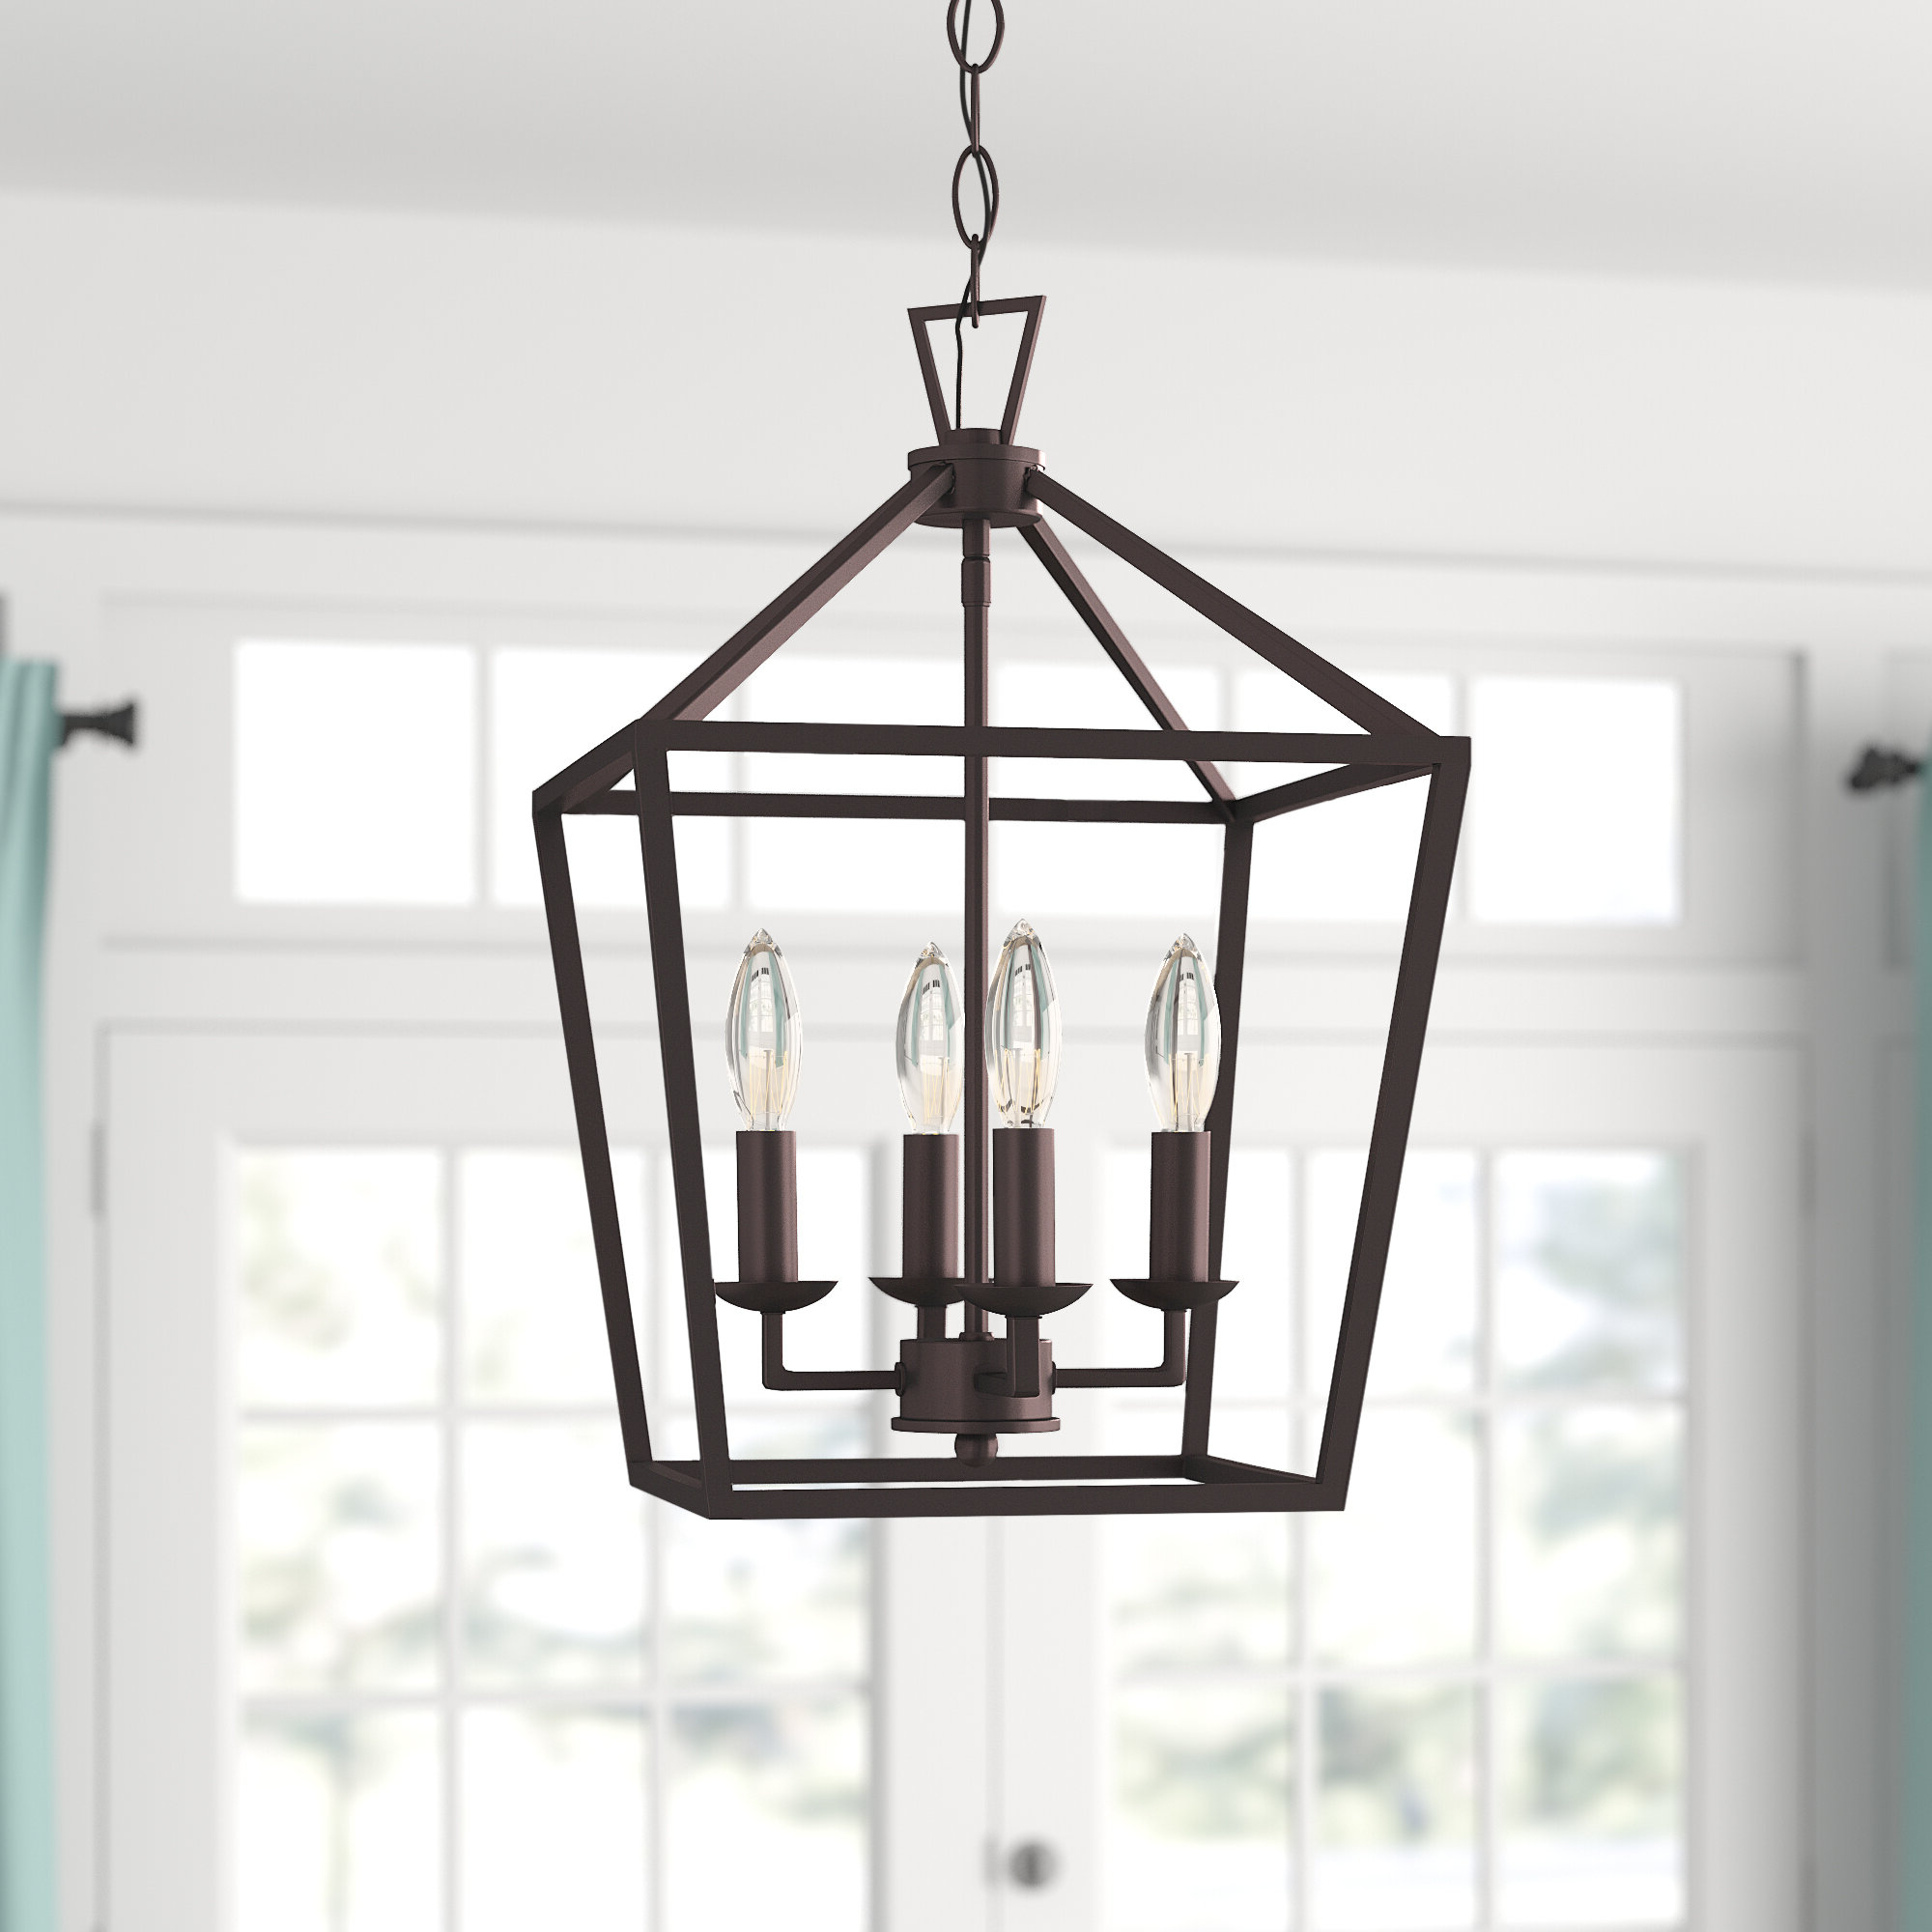 Carmen 4 Light Lantern Geometric Pendant With Favorite Carmen 6 Light Lantern Geometric Pendants (View 2 of 20)